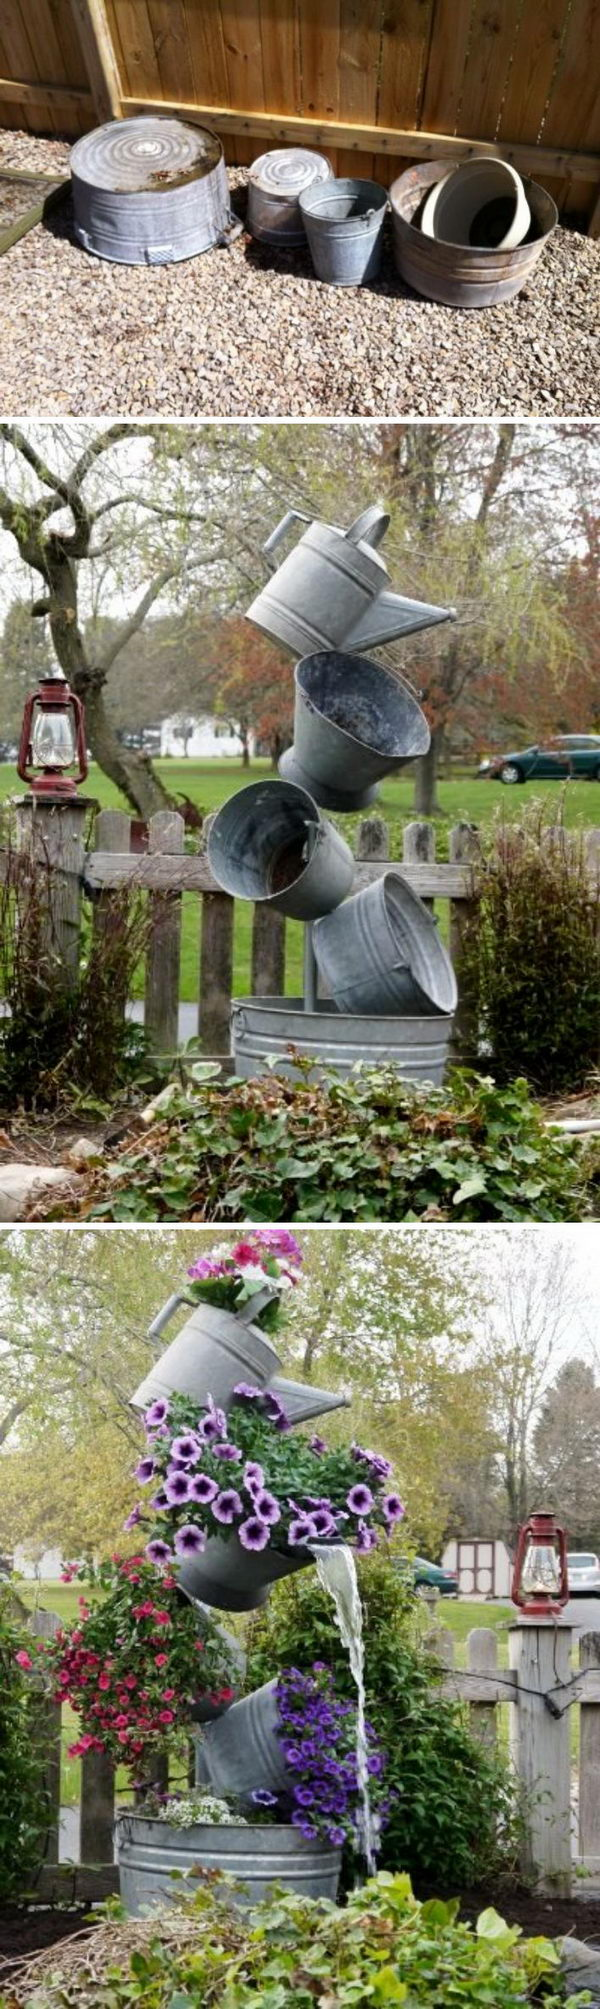 30+ Fun and Whimsical DIY Garden Projects - Hative on Whimsical Backyard Ideas id=91316